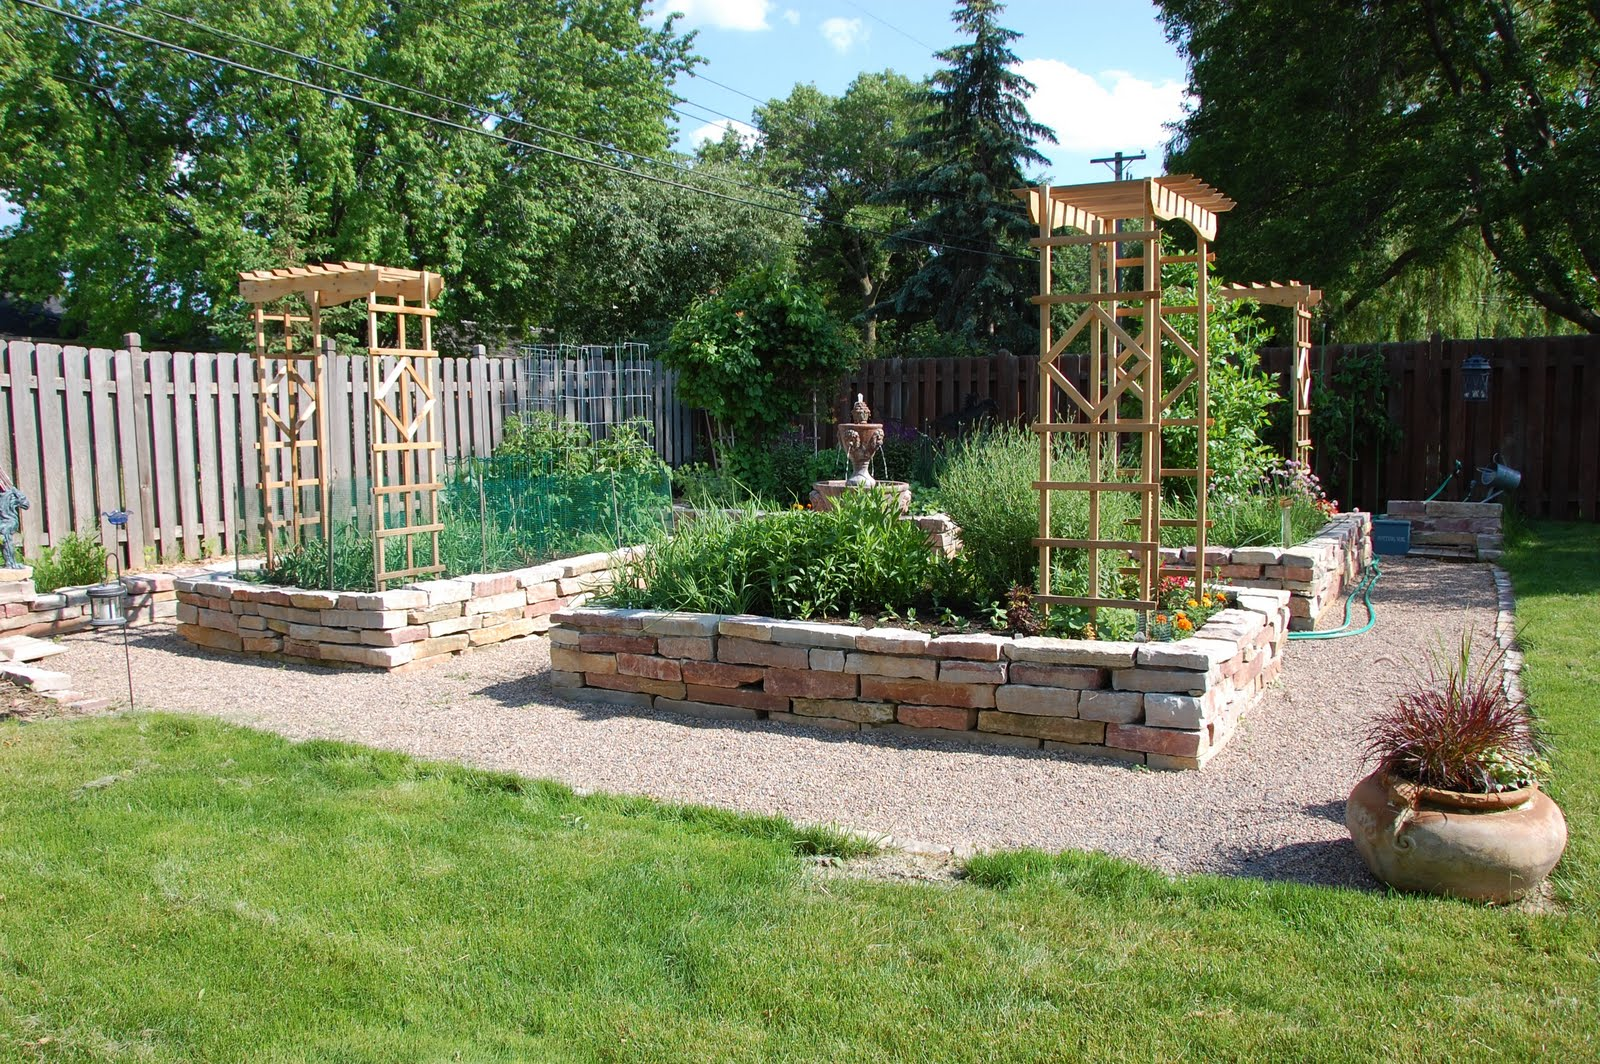 Raised vegetable gardens - Vignette Design Design Bucket List 3 Design A Beautiful Raised Bed Vegetable Garden